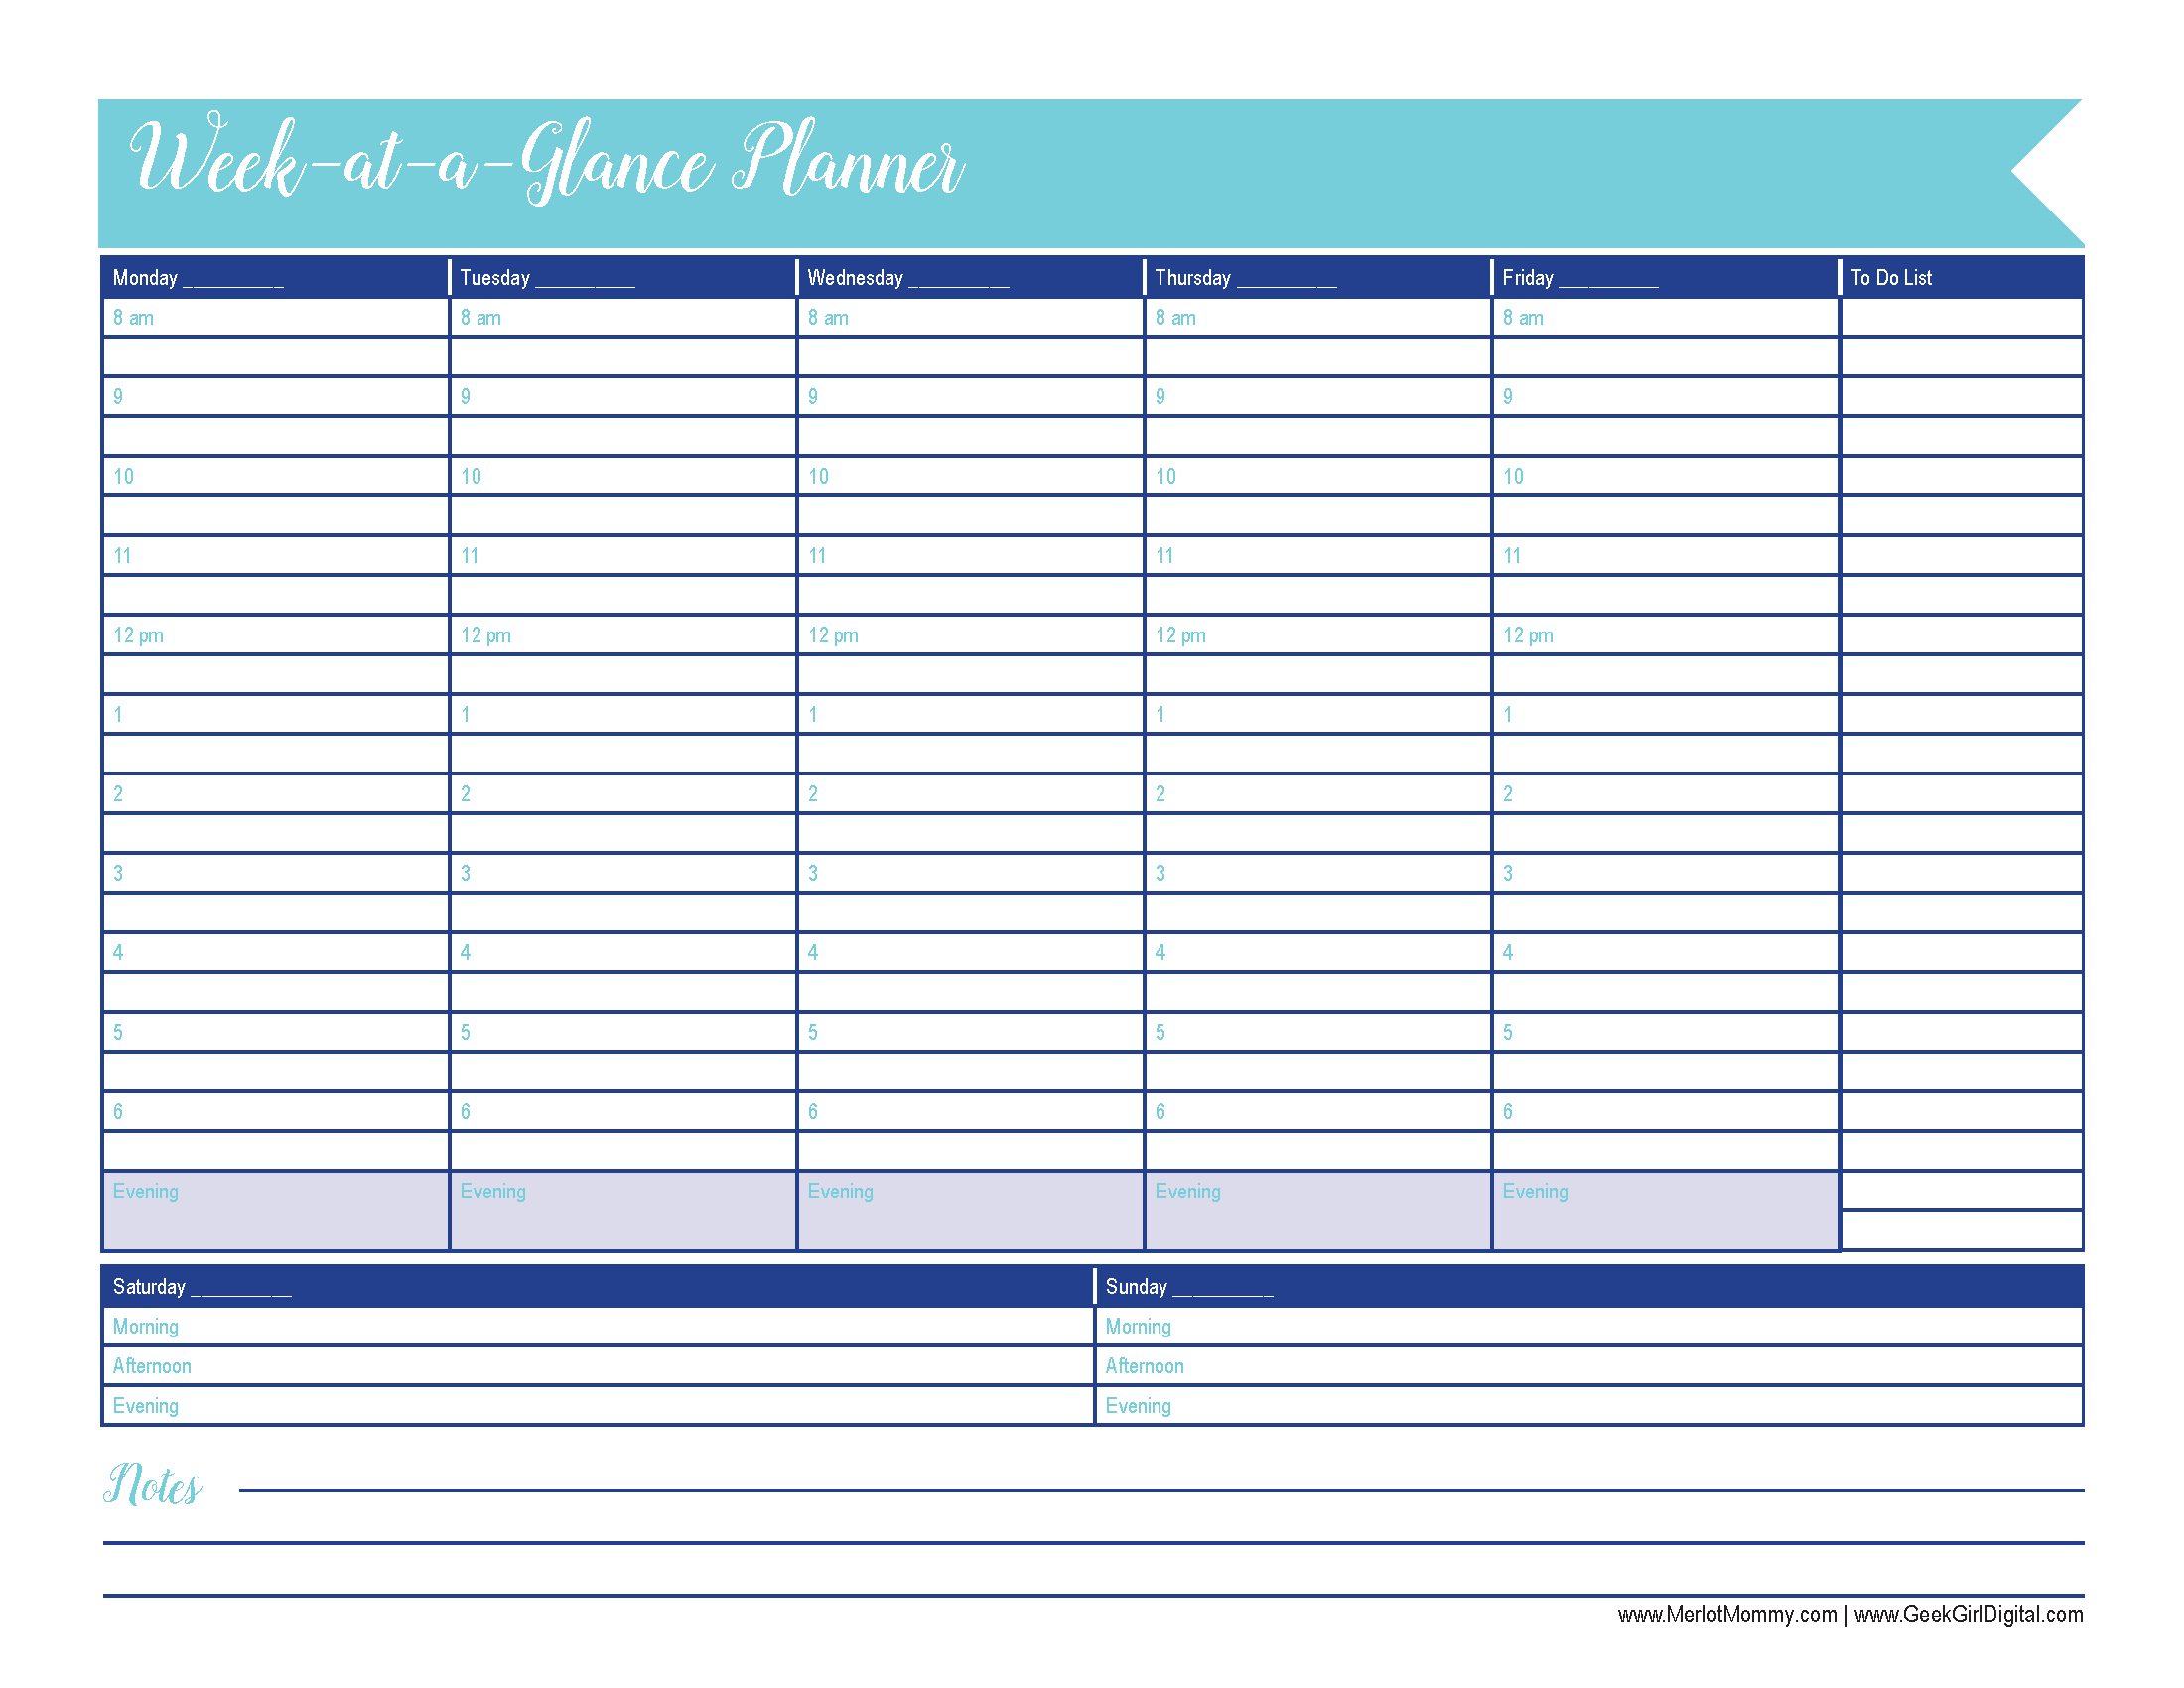 Week-at-a-Glance: 30 Days of Free Printables | Merlot Mommy